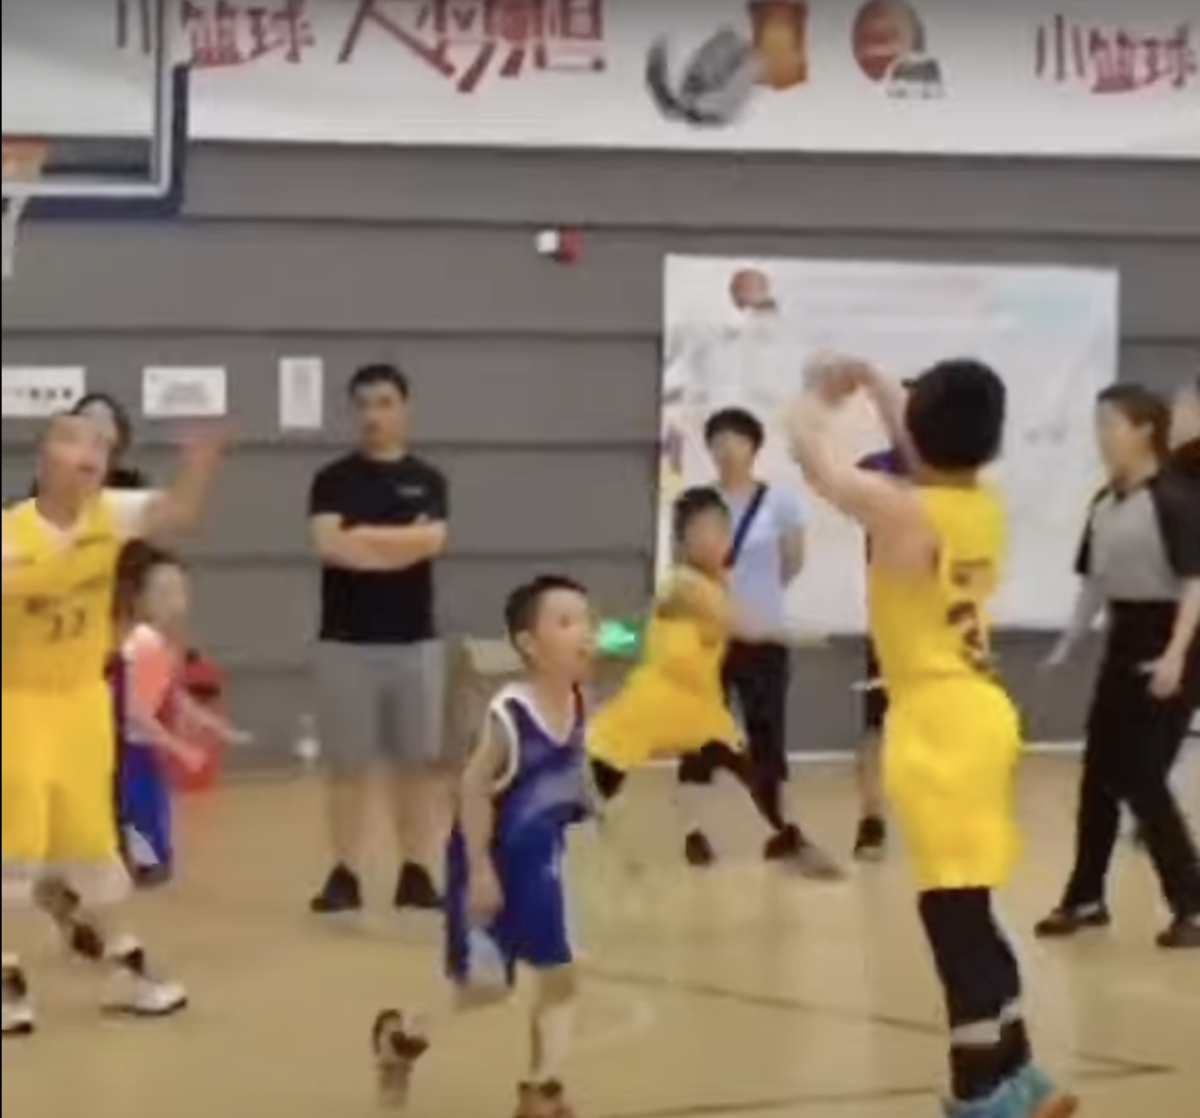 Young Basketball Player In China Is Dubbed 'Lil Steph Curry' After His Game Footage Goes Viral